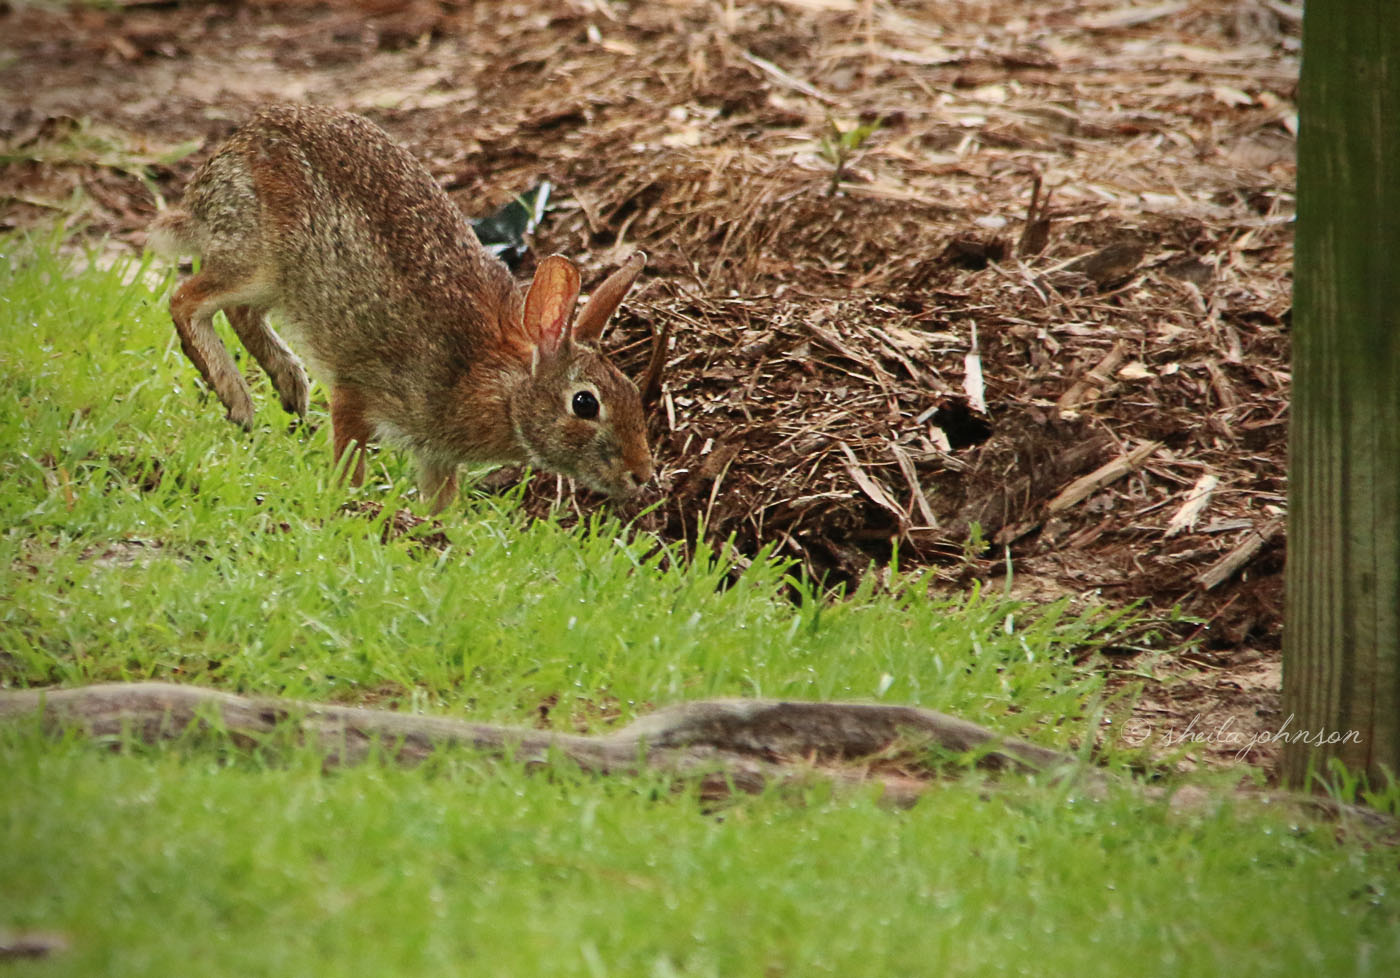 I've Seen Only Two Reactions From An Eastern Cottontail Spying Me With My Camera -- Freeze And Run. That Means I Either Snap A Rabbit Sitting Completely Still Or The Dirt Kicked Up In The Air Which Is Left Behind. This One Opted For 'run,' And I Managed To Click Quickly Enough.